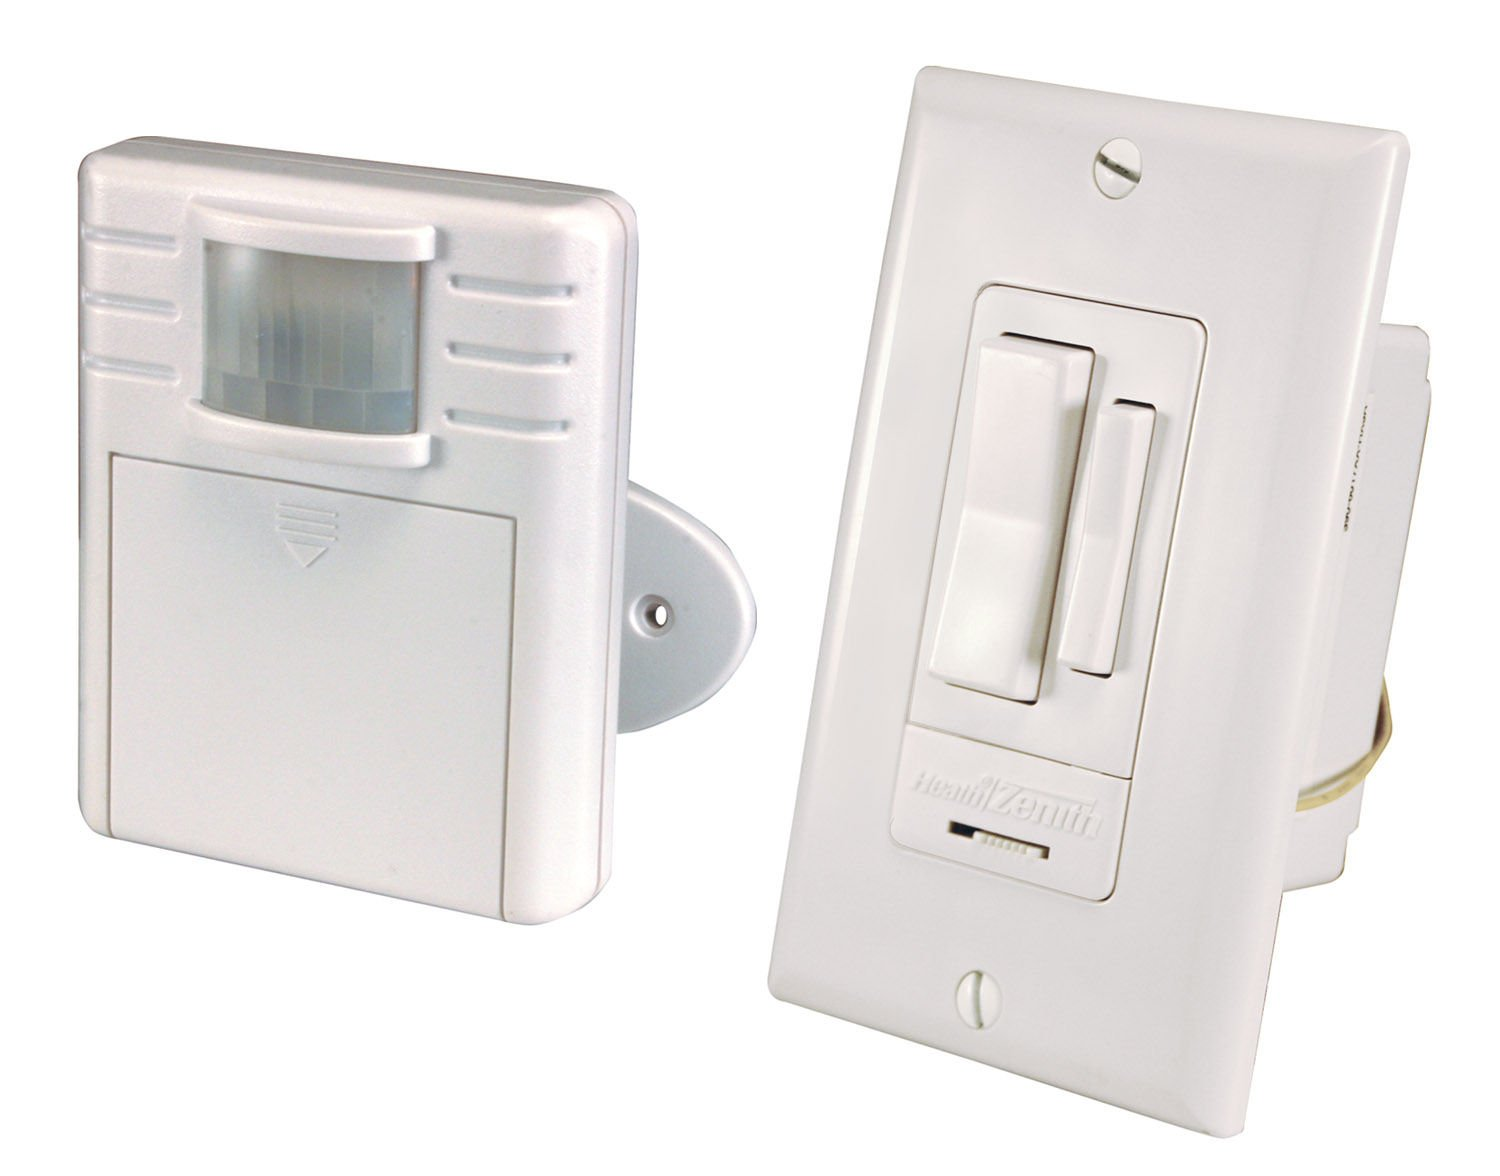 Heath Zenith Wc 6052 Wh Transmitter And Receiver Indoor Motion Wiring Diagram Switch Set White Wall Light Switches